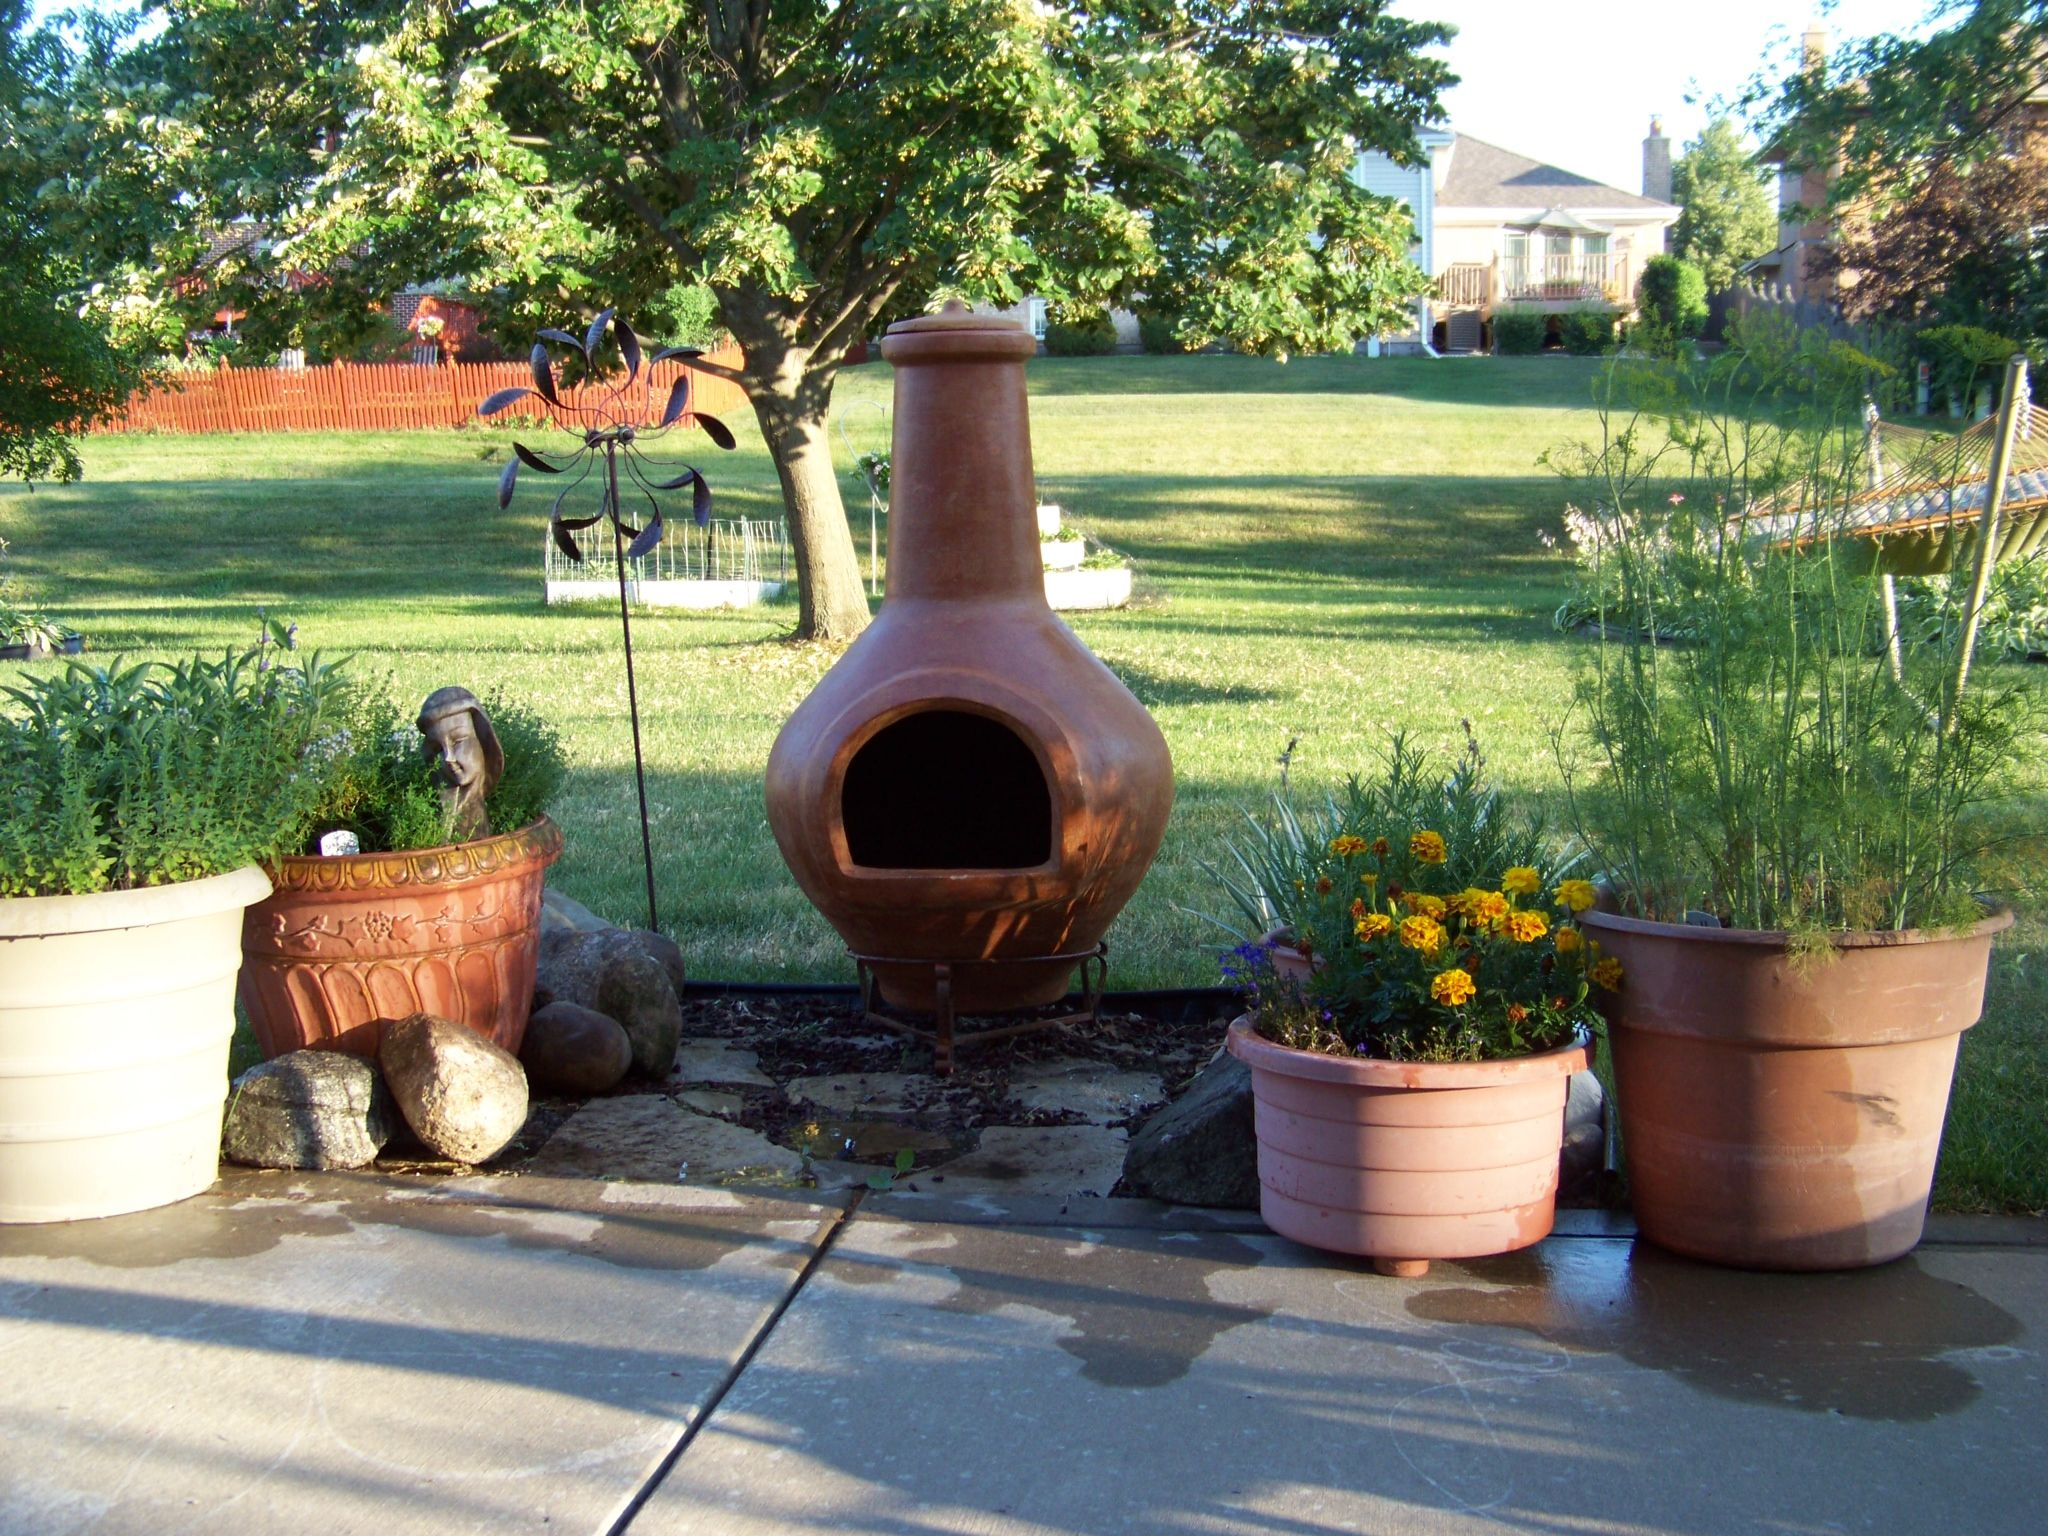 Superior New Addition To The Backyard Garden, A Chiminea Fire Pit.